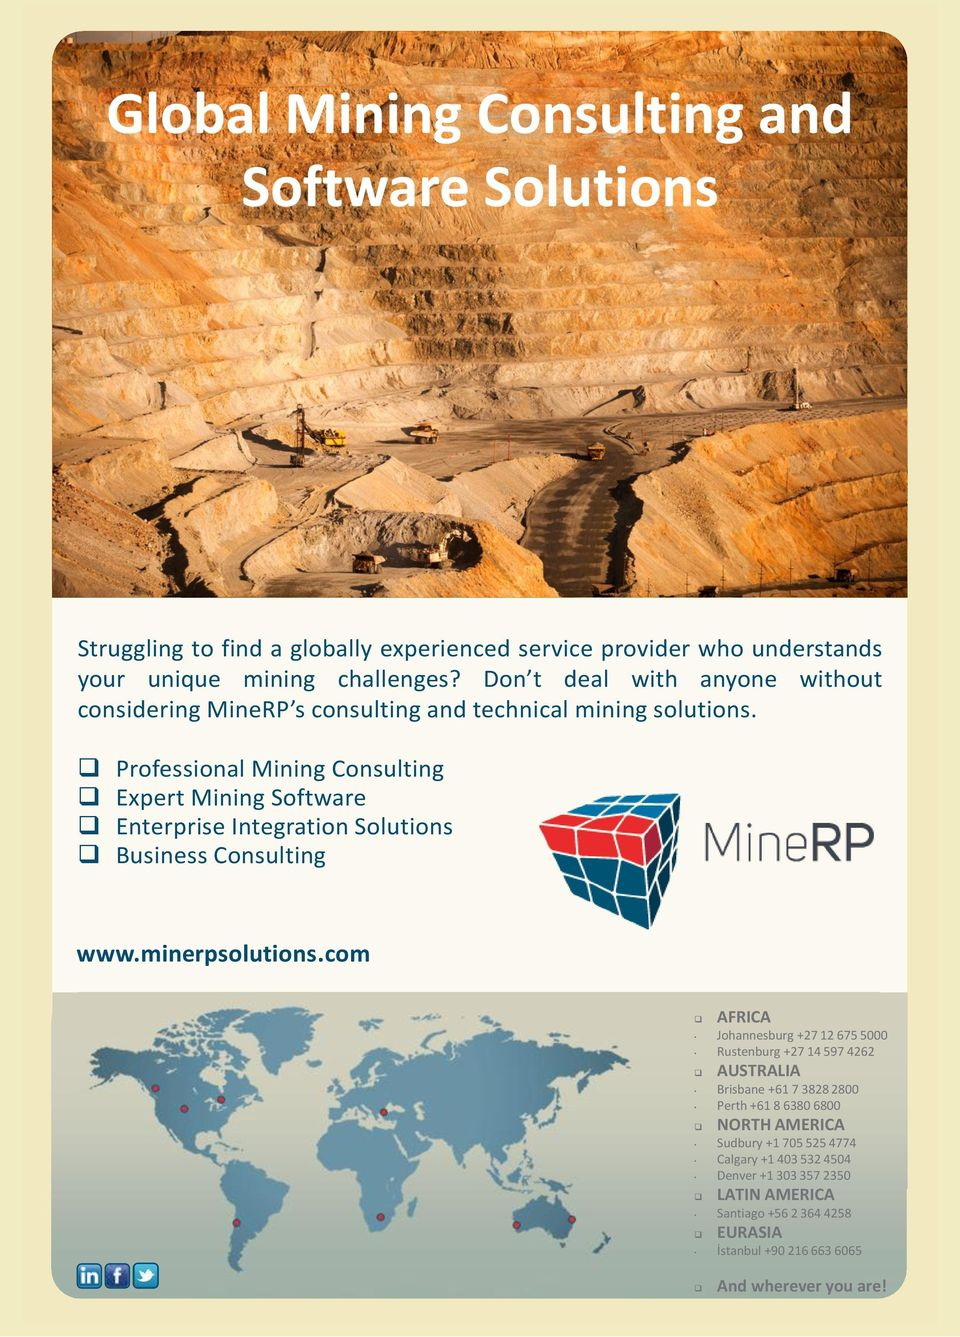 Professional Mining Consulting Expert Mining Software Enterprise Integration Solutions Business Consulting www.minerpsolutions.